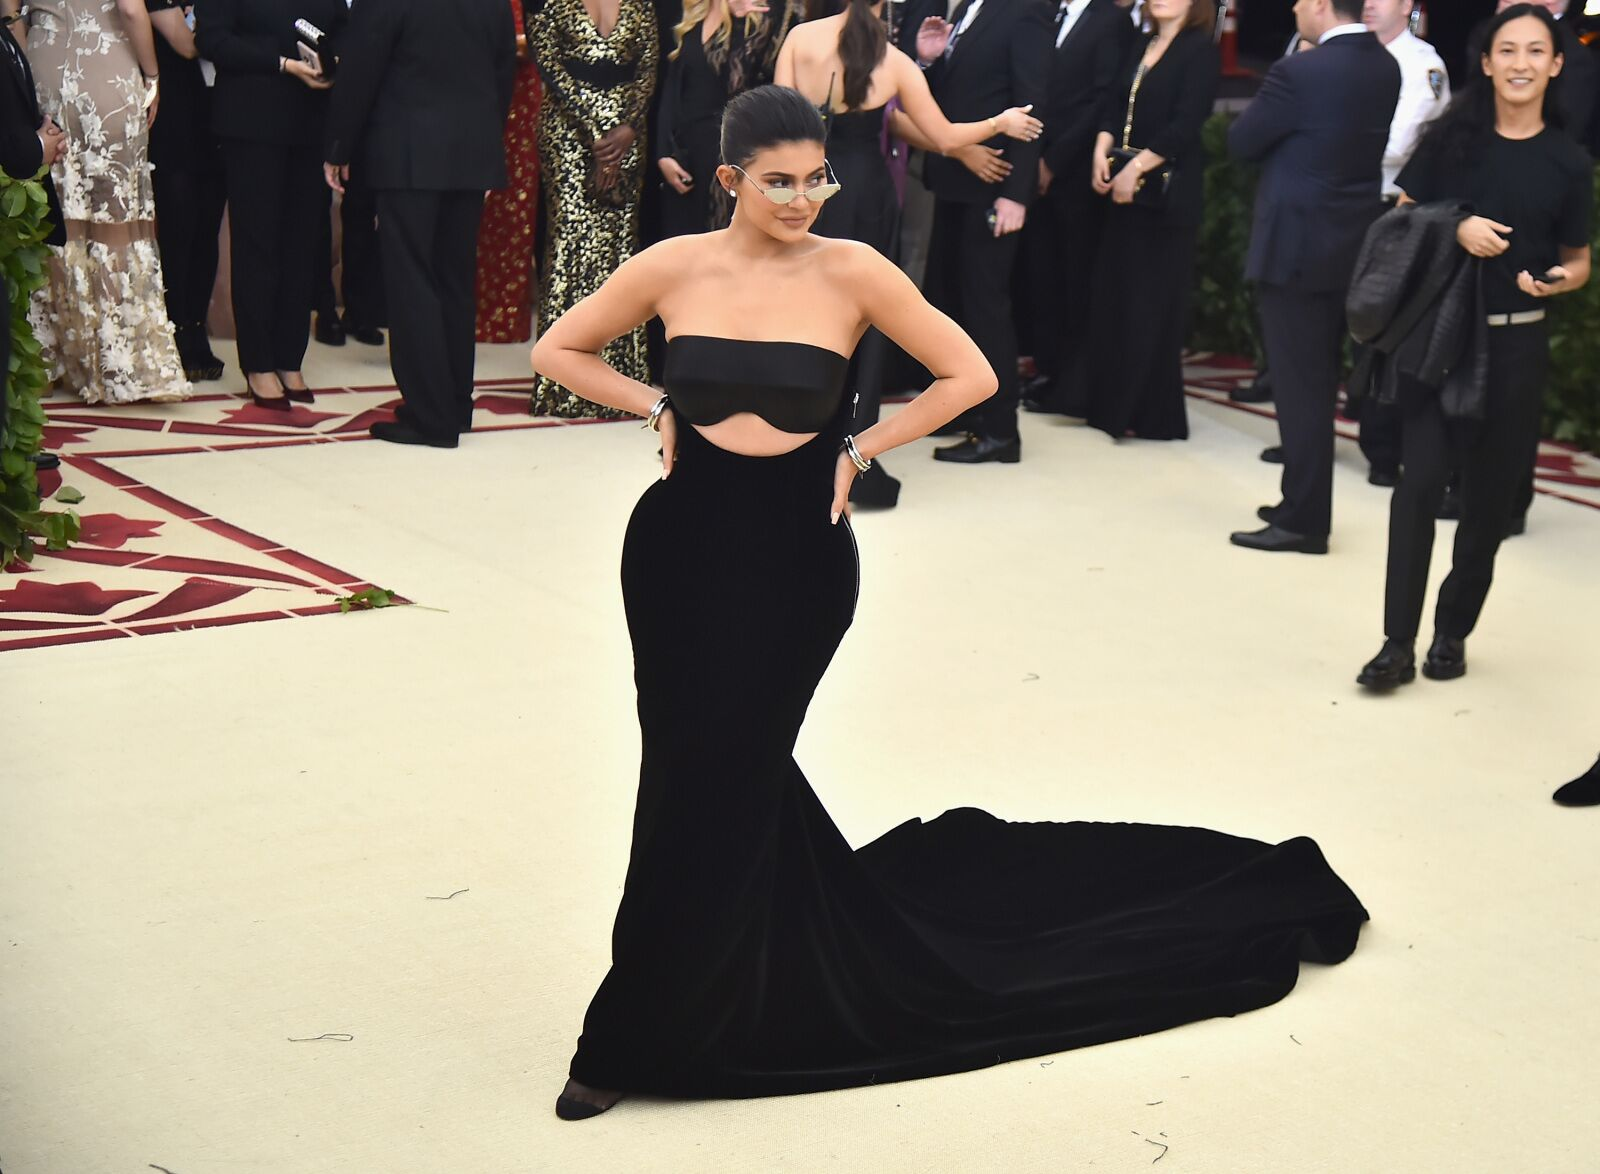 Kylie Jenner lifts top to show Instagram tanned, toned tummy amid weight loss diet